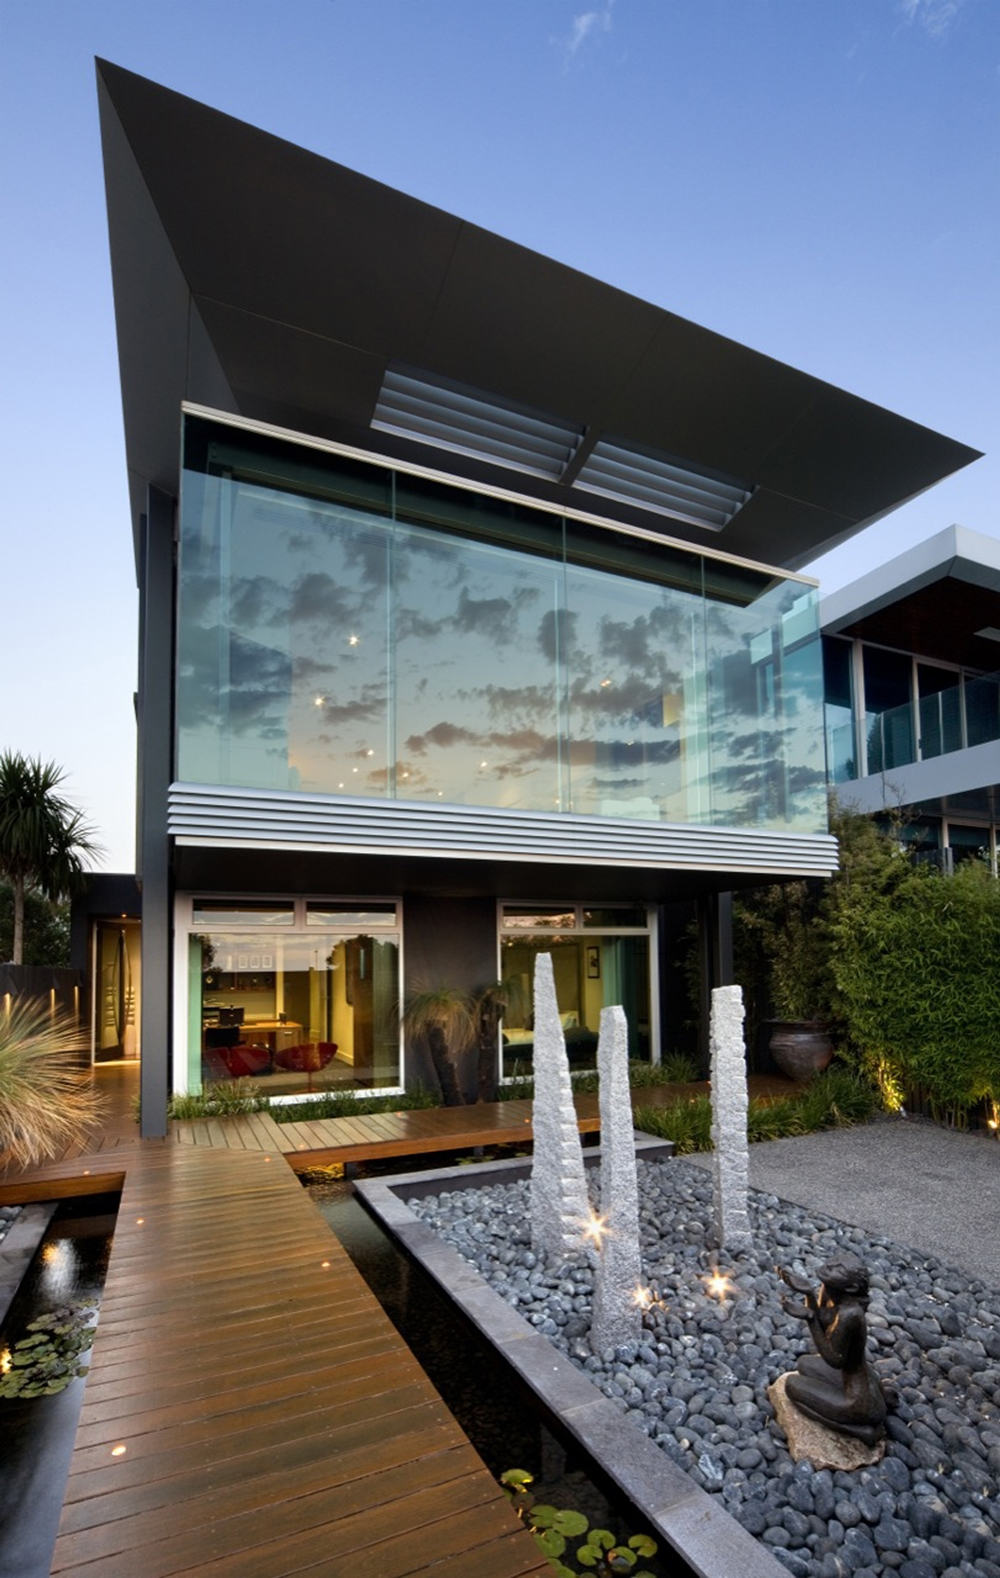 Top 50 Modern House Designs Ever Built on Dubai 3 Bedroom Townhouse Floor Plans